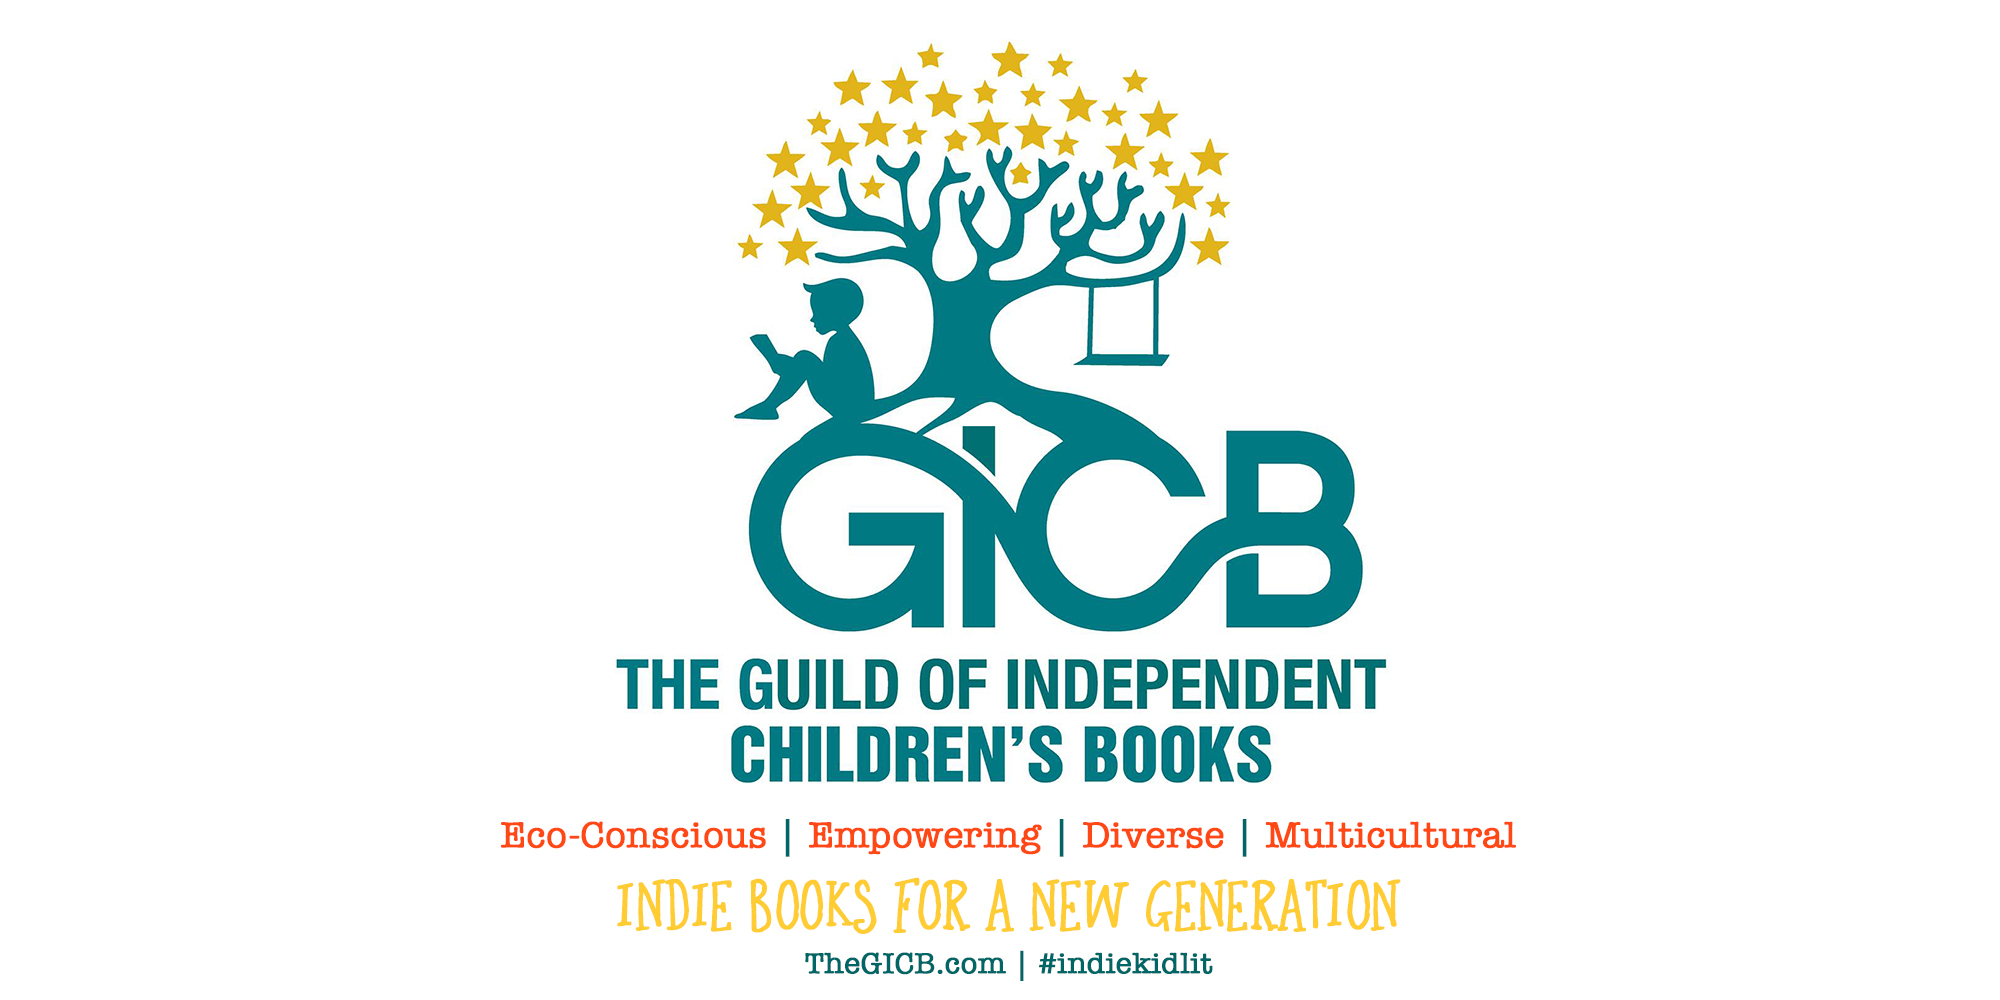 The Guild of Independent Children's Books